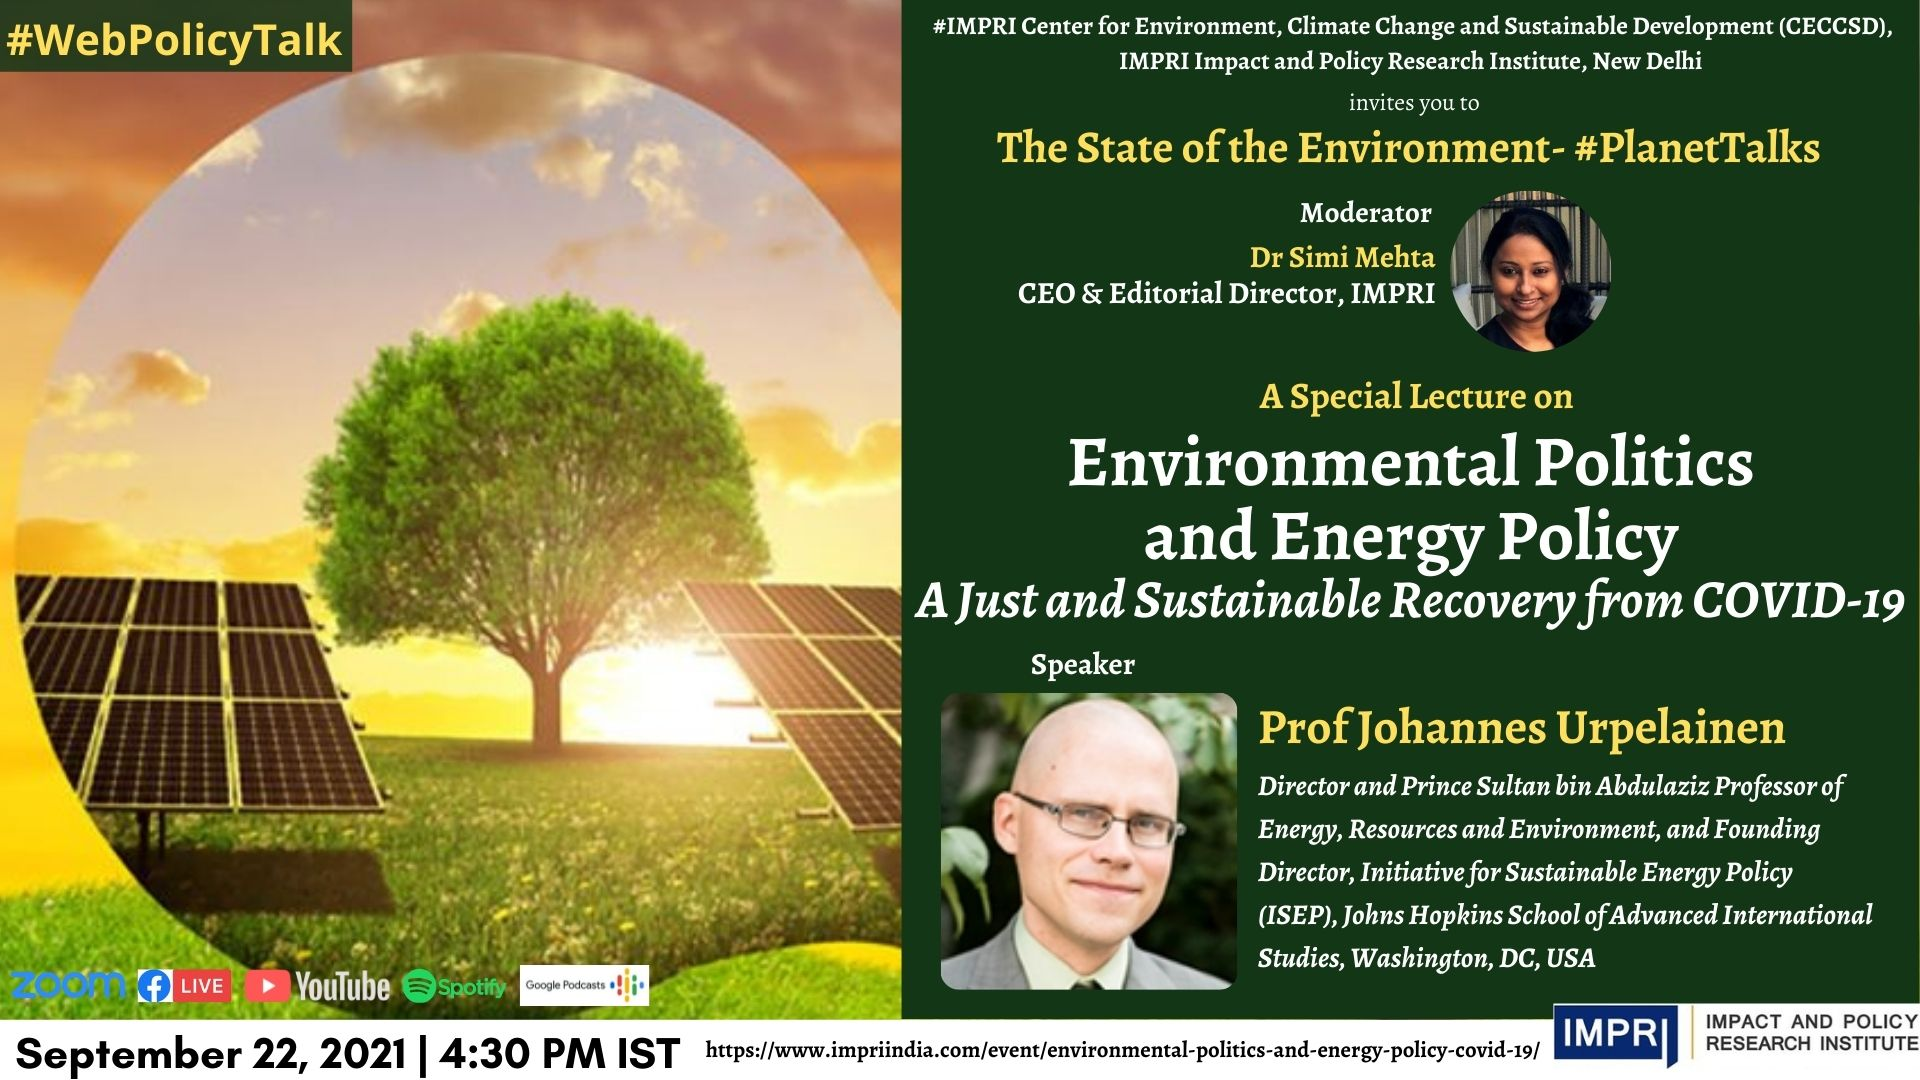 Environmental Politics and Energy Policy: A Just and Sustainable Recovery from COVID-19